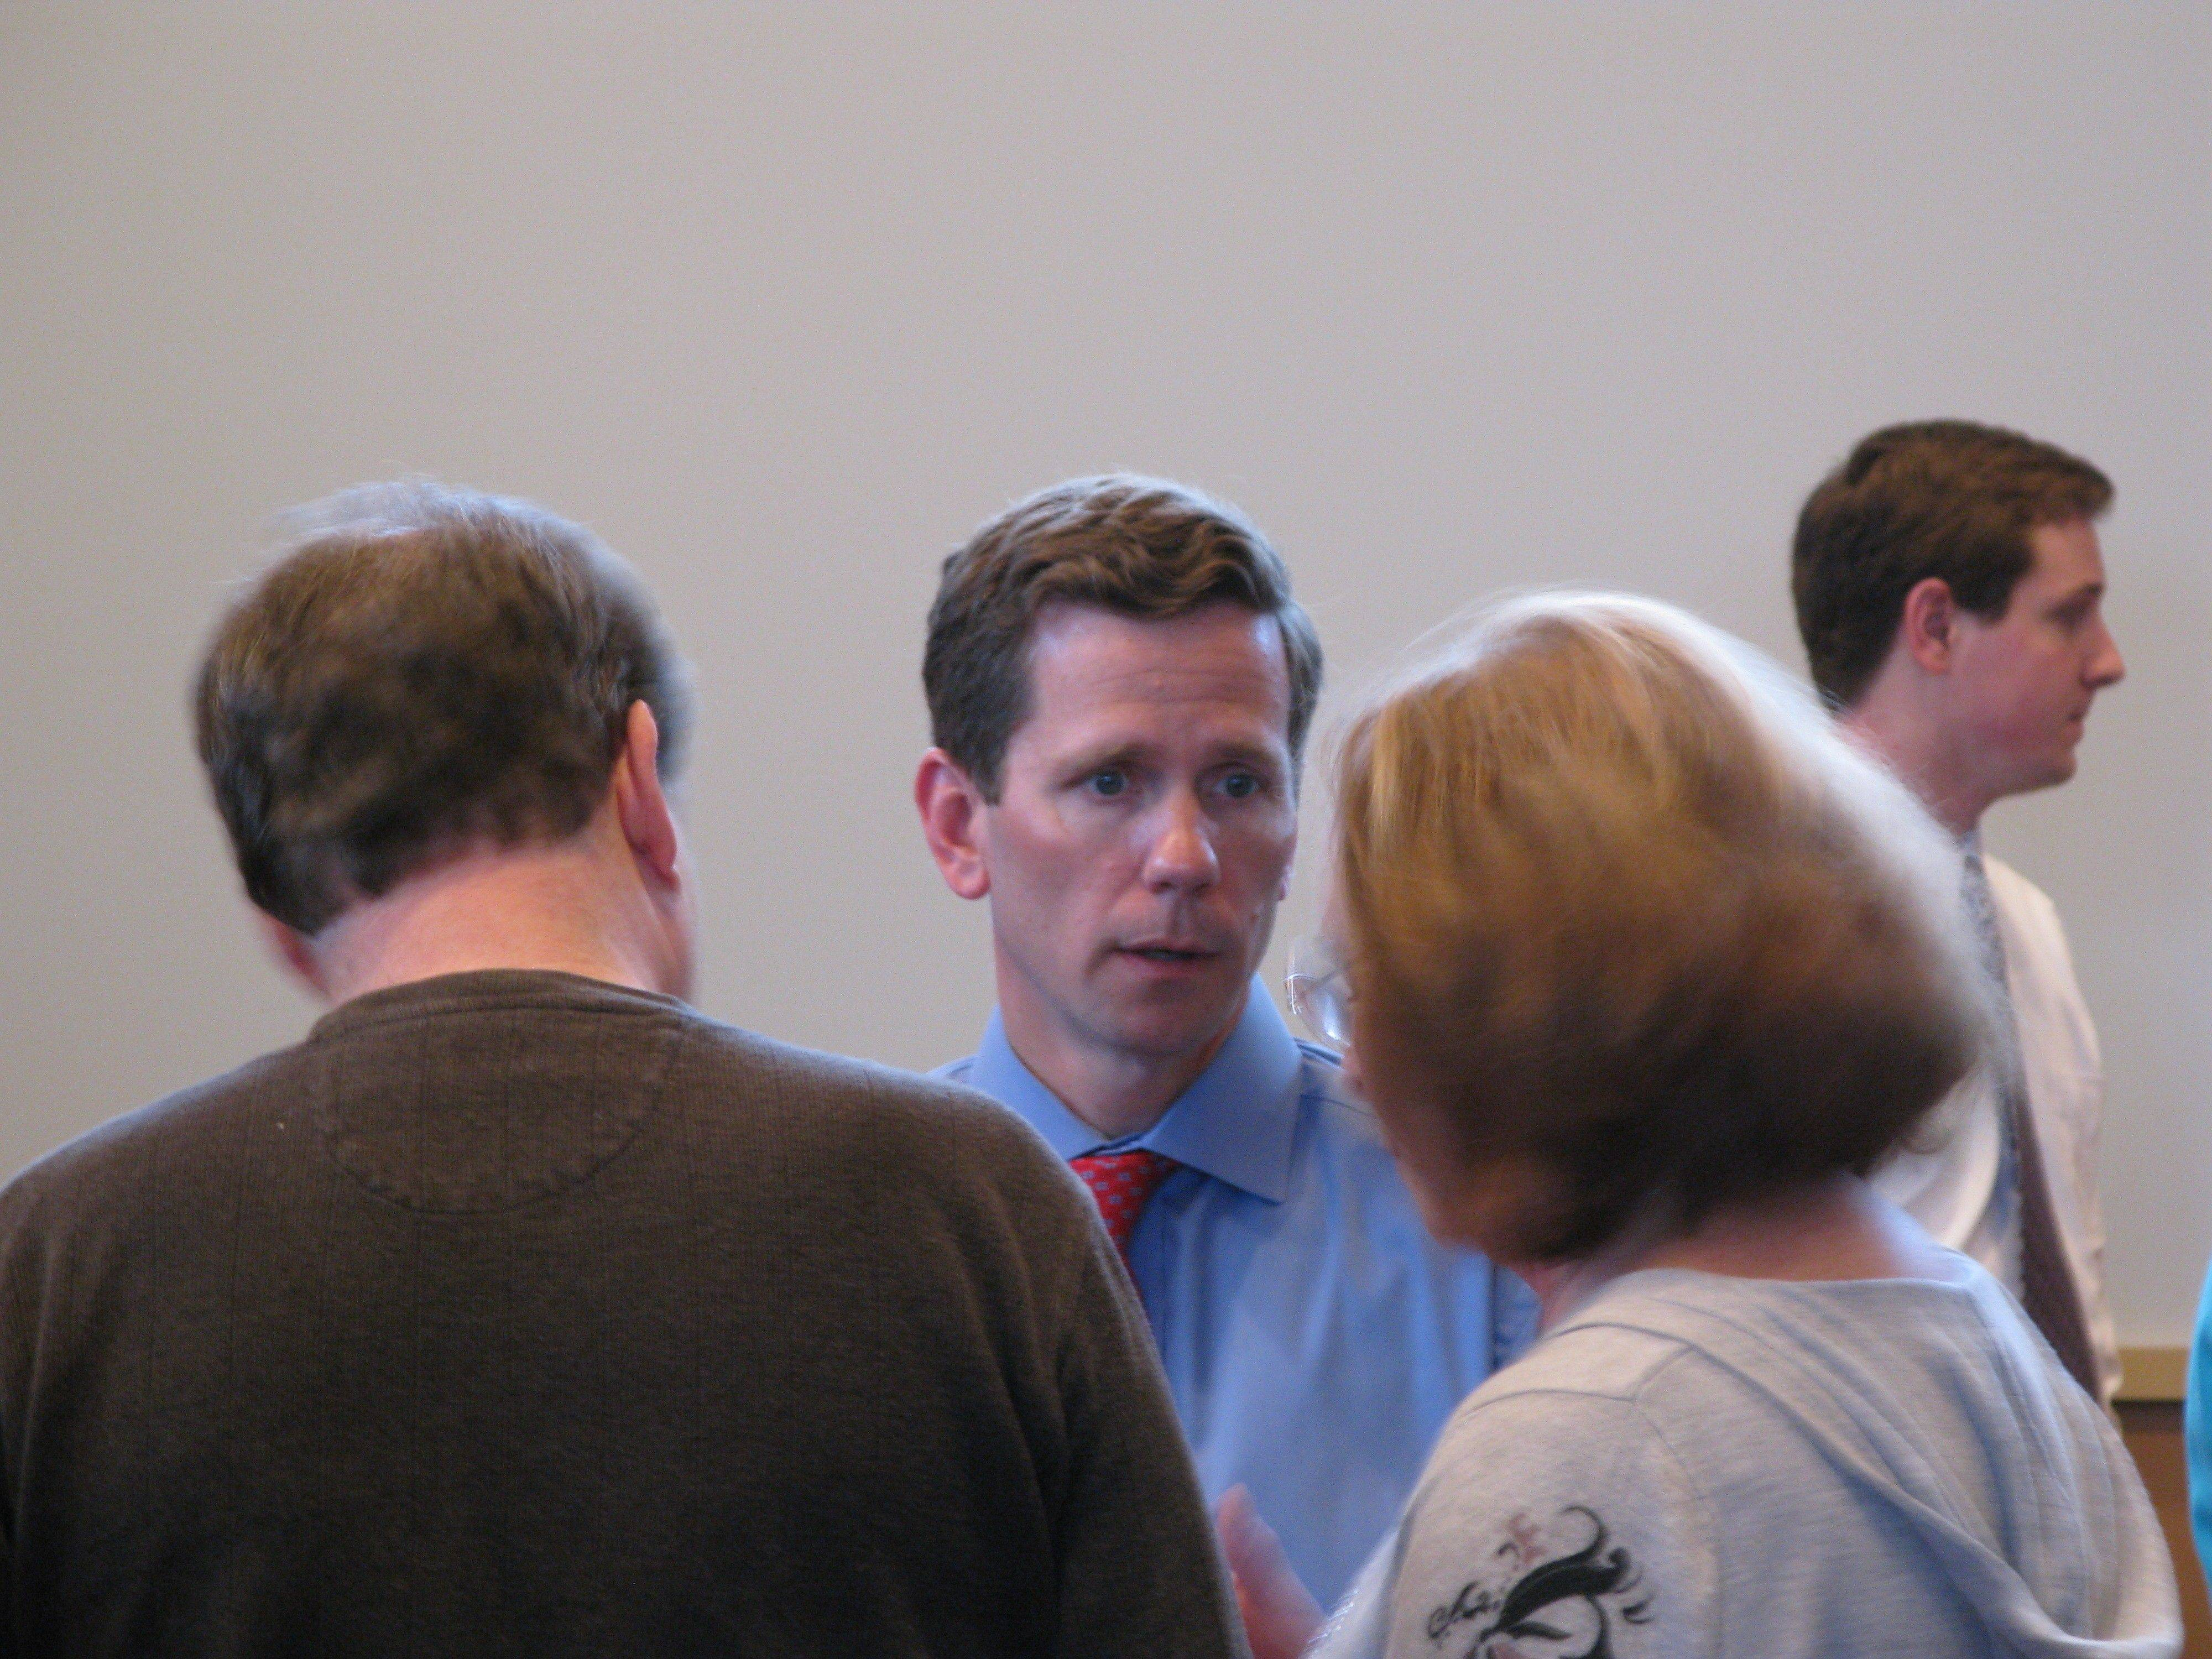 About 45 people attended a town hall meeting Saturday, hosted by Congressman Robert Dold at the Buffalo Grove village hall.